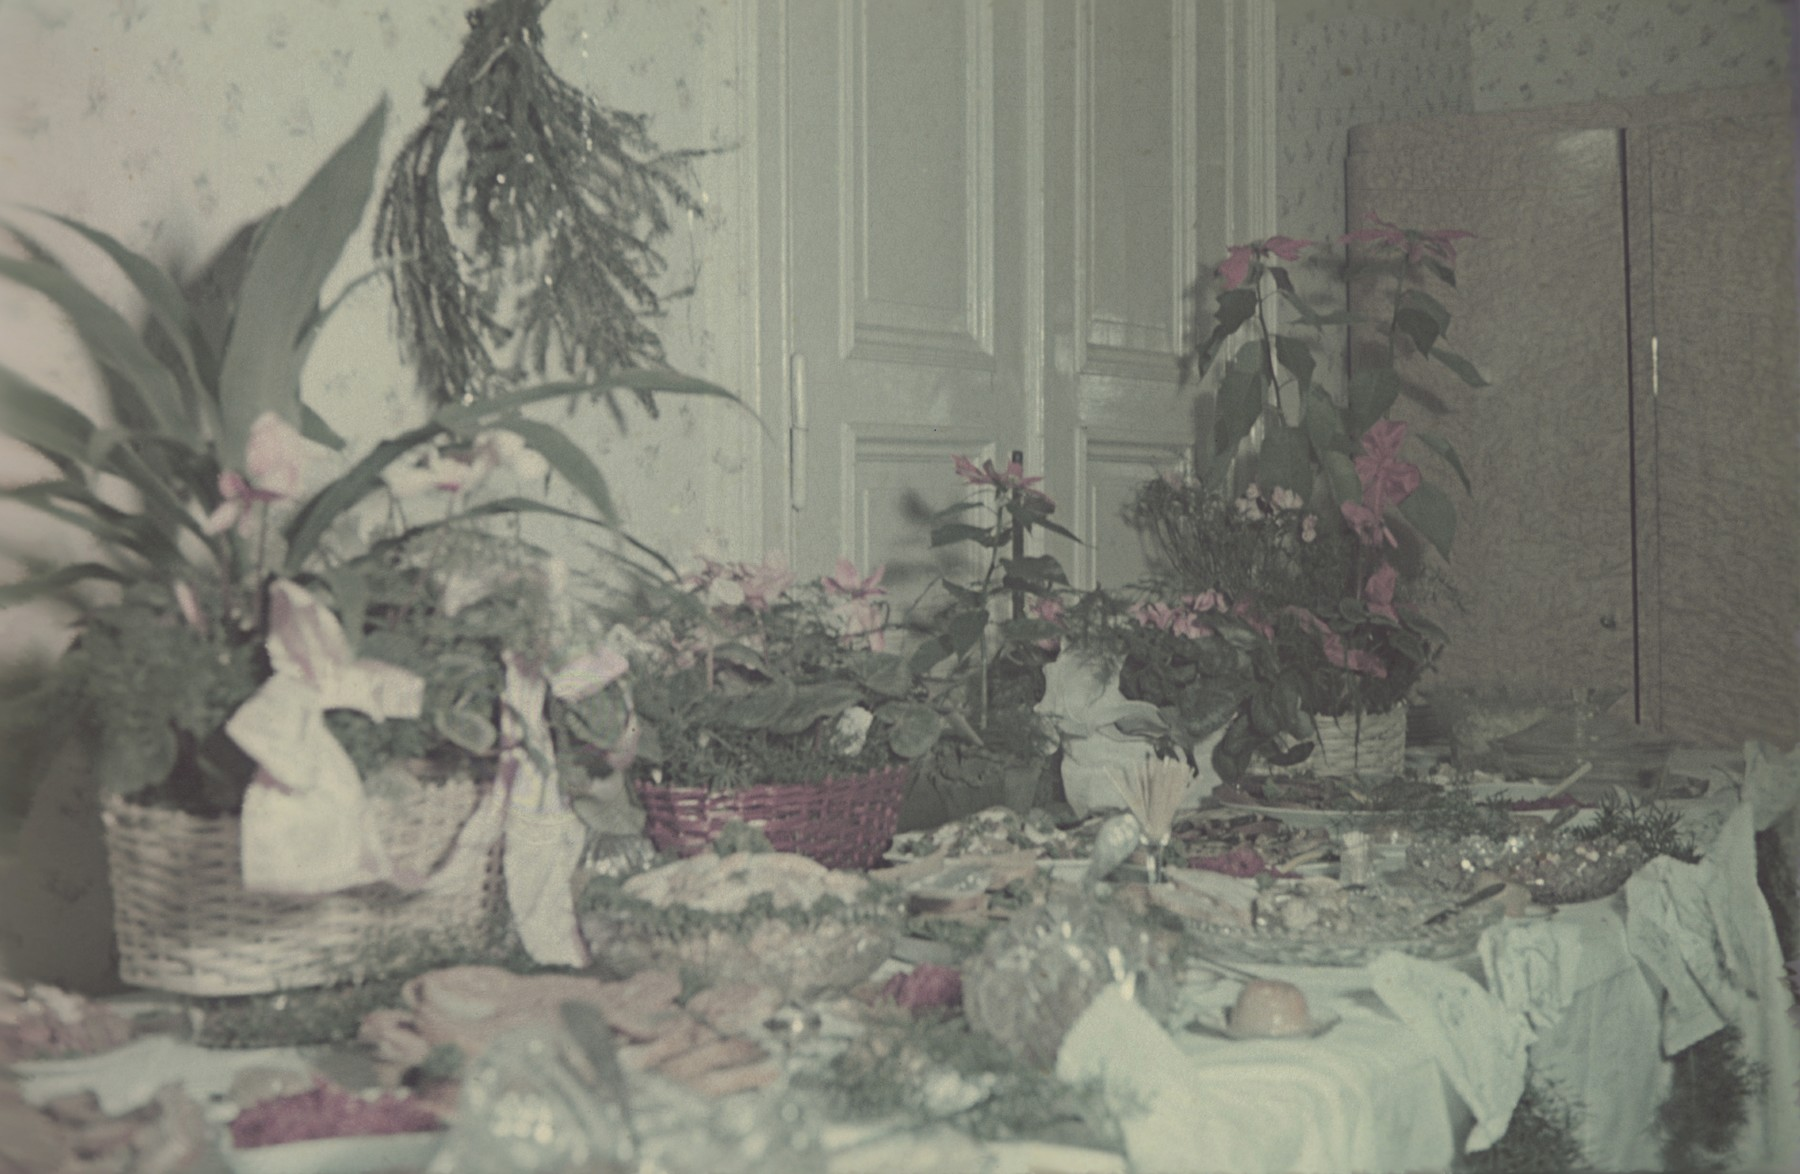 A table decorated with plants and food for a celebration of the birthday of Hans Biebow, the German head of the Lodz ghetto administration.